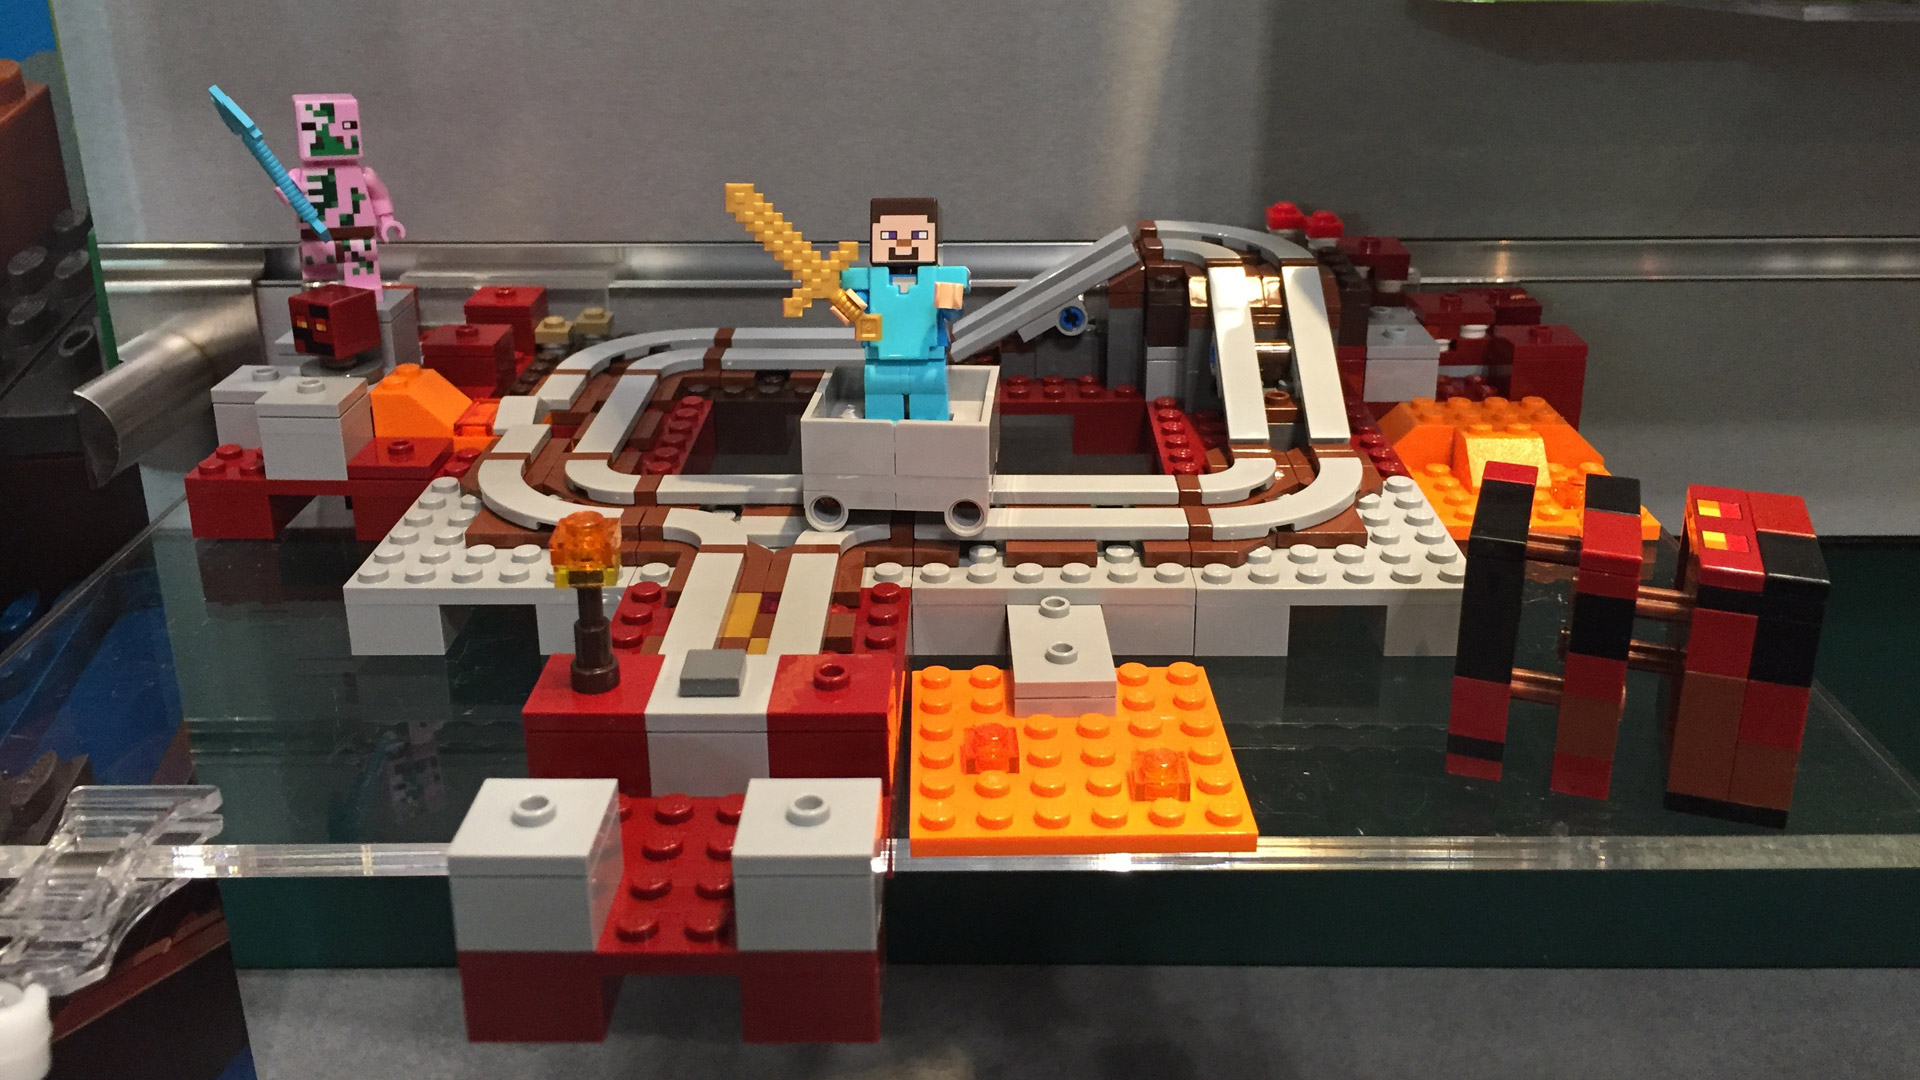 Lego Minecraft Sets 2017 Toy Fair Gamerheadquarters 21134 The Waterfall Base Set 21130 Nether Railway At